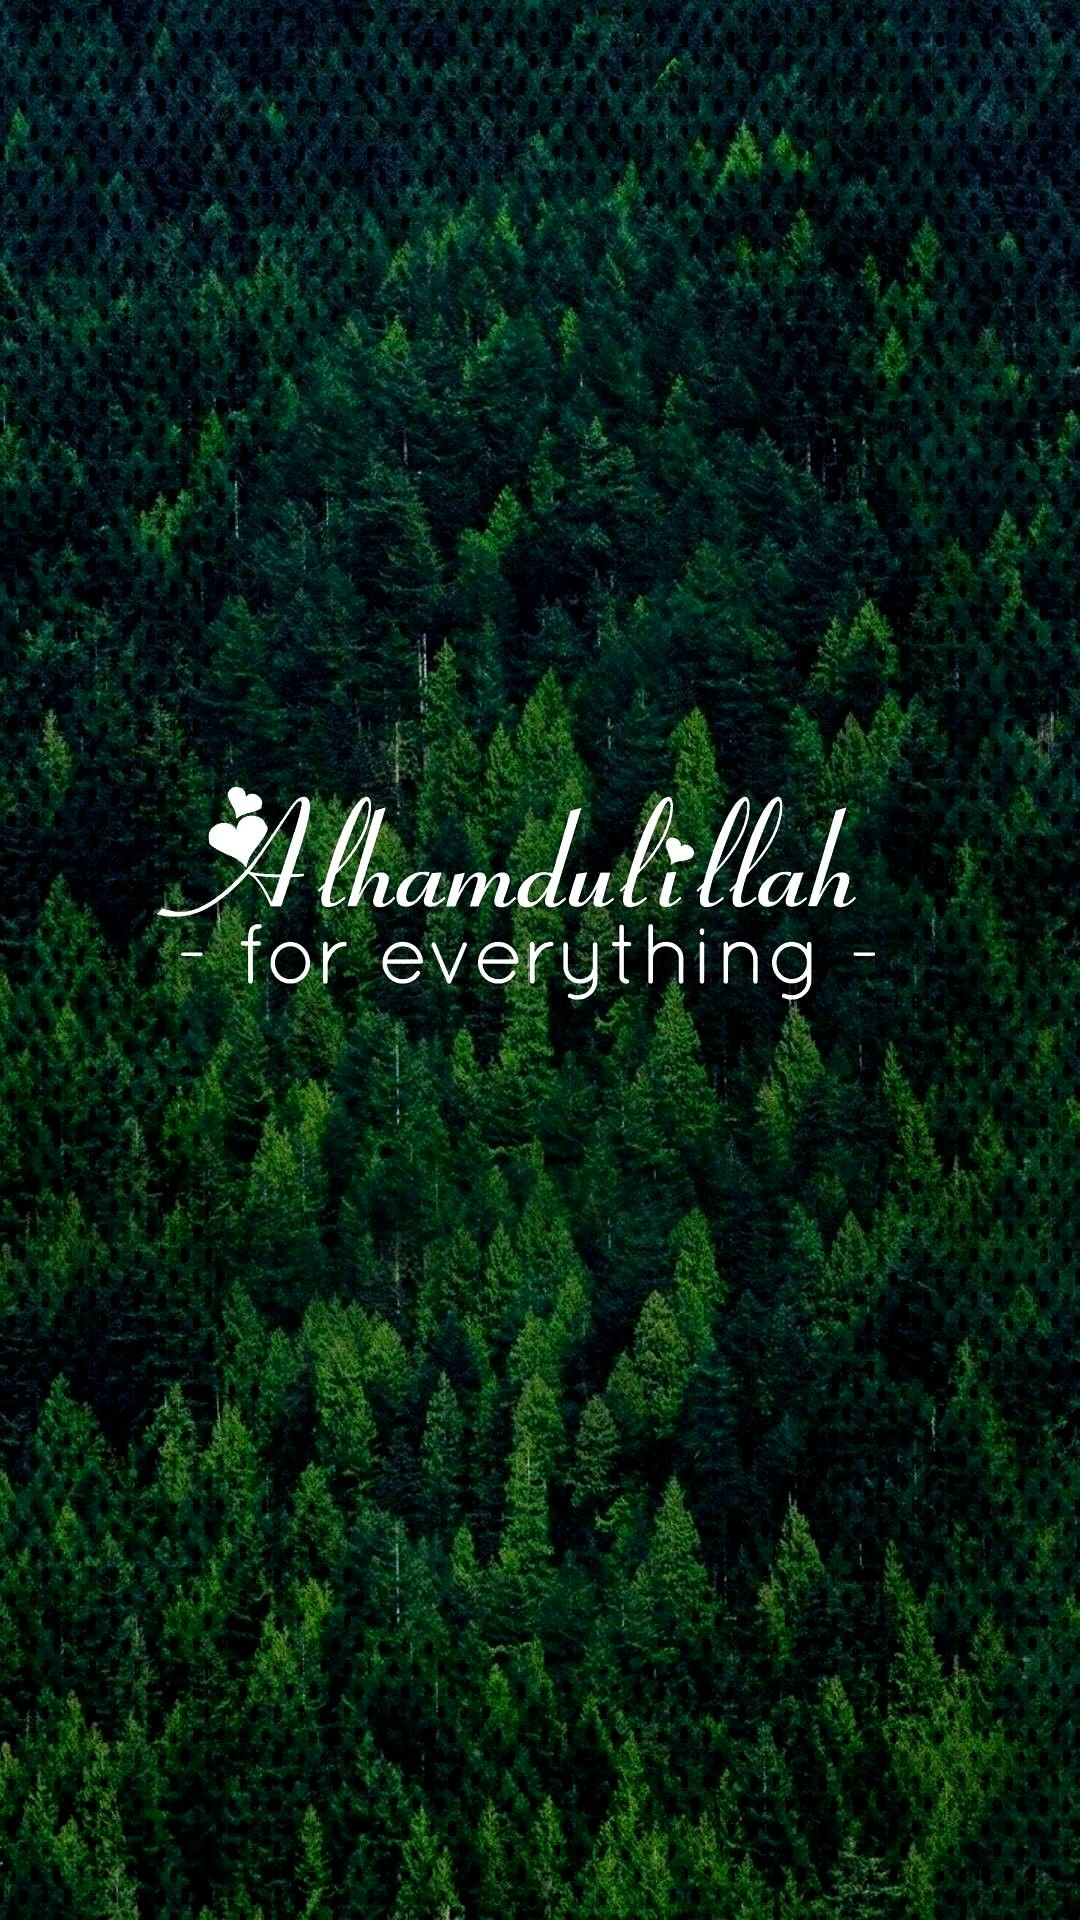 Alhamdulillah Everything Parents Friends Health Life Part Body Good For Of Alhamdulillah For Li In 2020 Islamic Quotes Wallpaper Islamic Quotes Quran Quotes